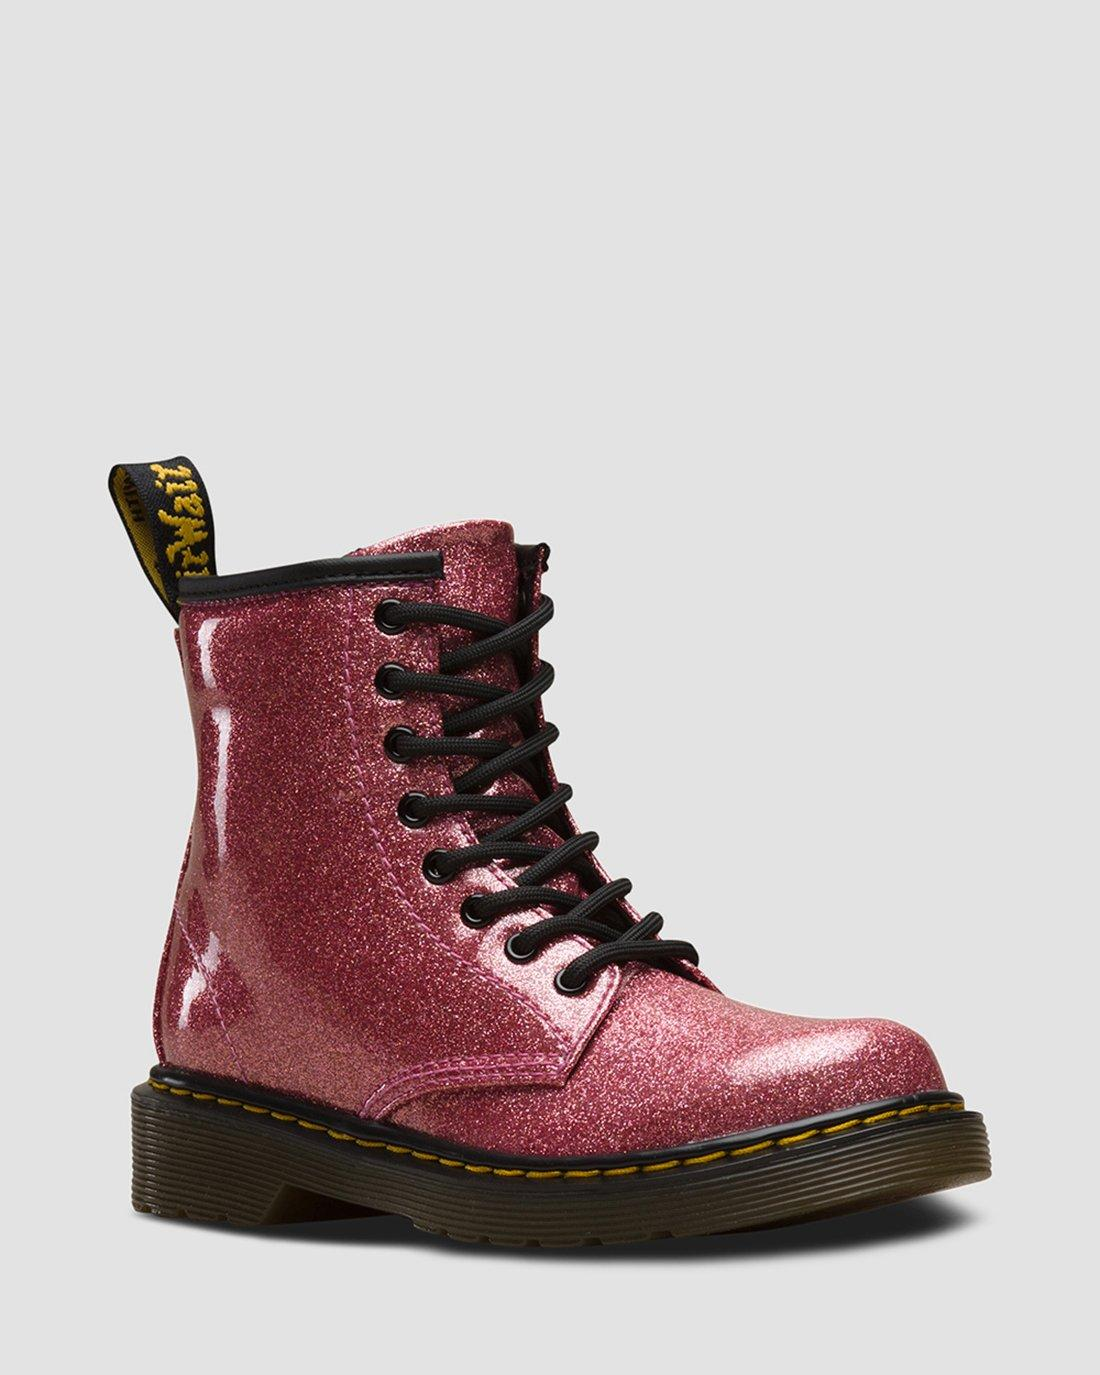 DR MARTENS JUNIOR 1460 GLITTER LACE UP BOOTS